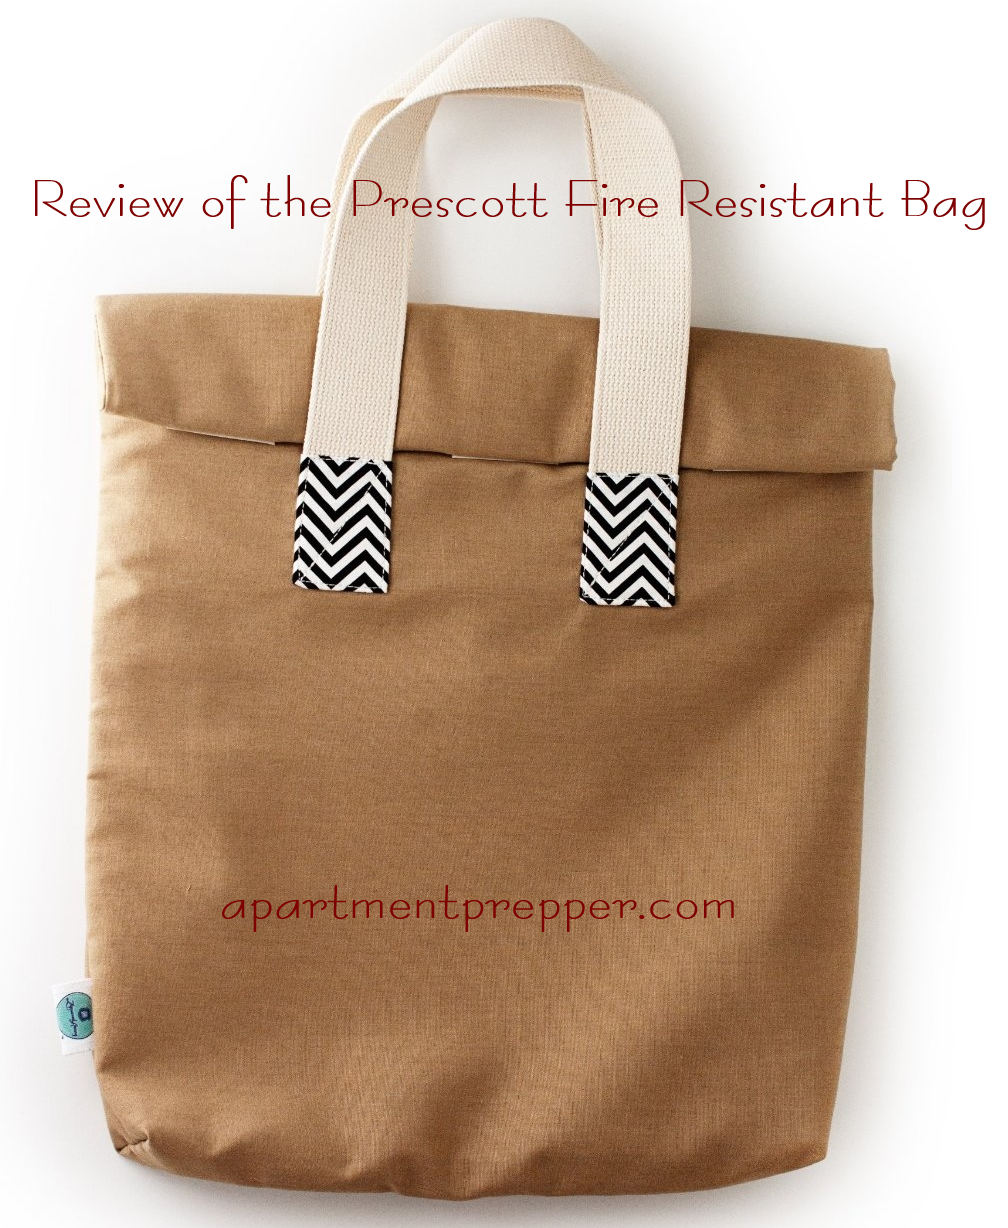 Review of the Prescott Fire Resistant bag